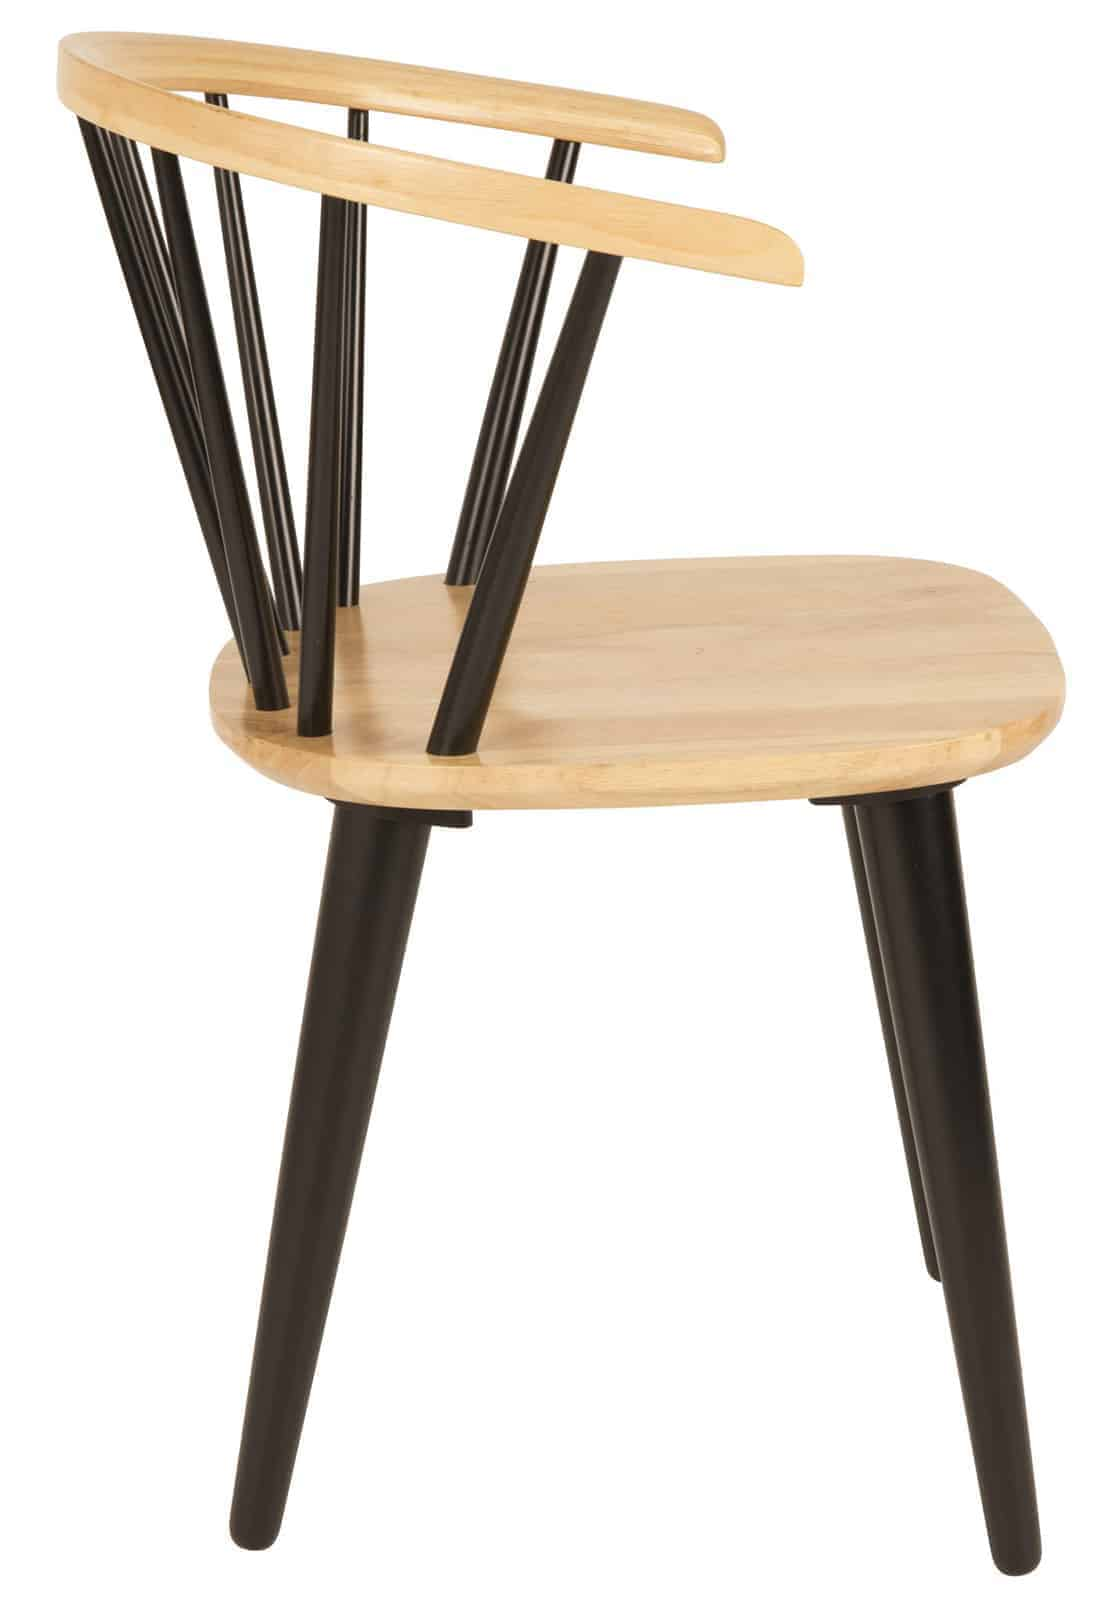 wooden chair with black legs